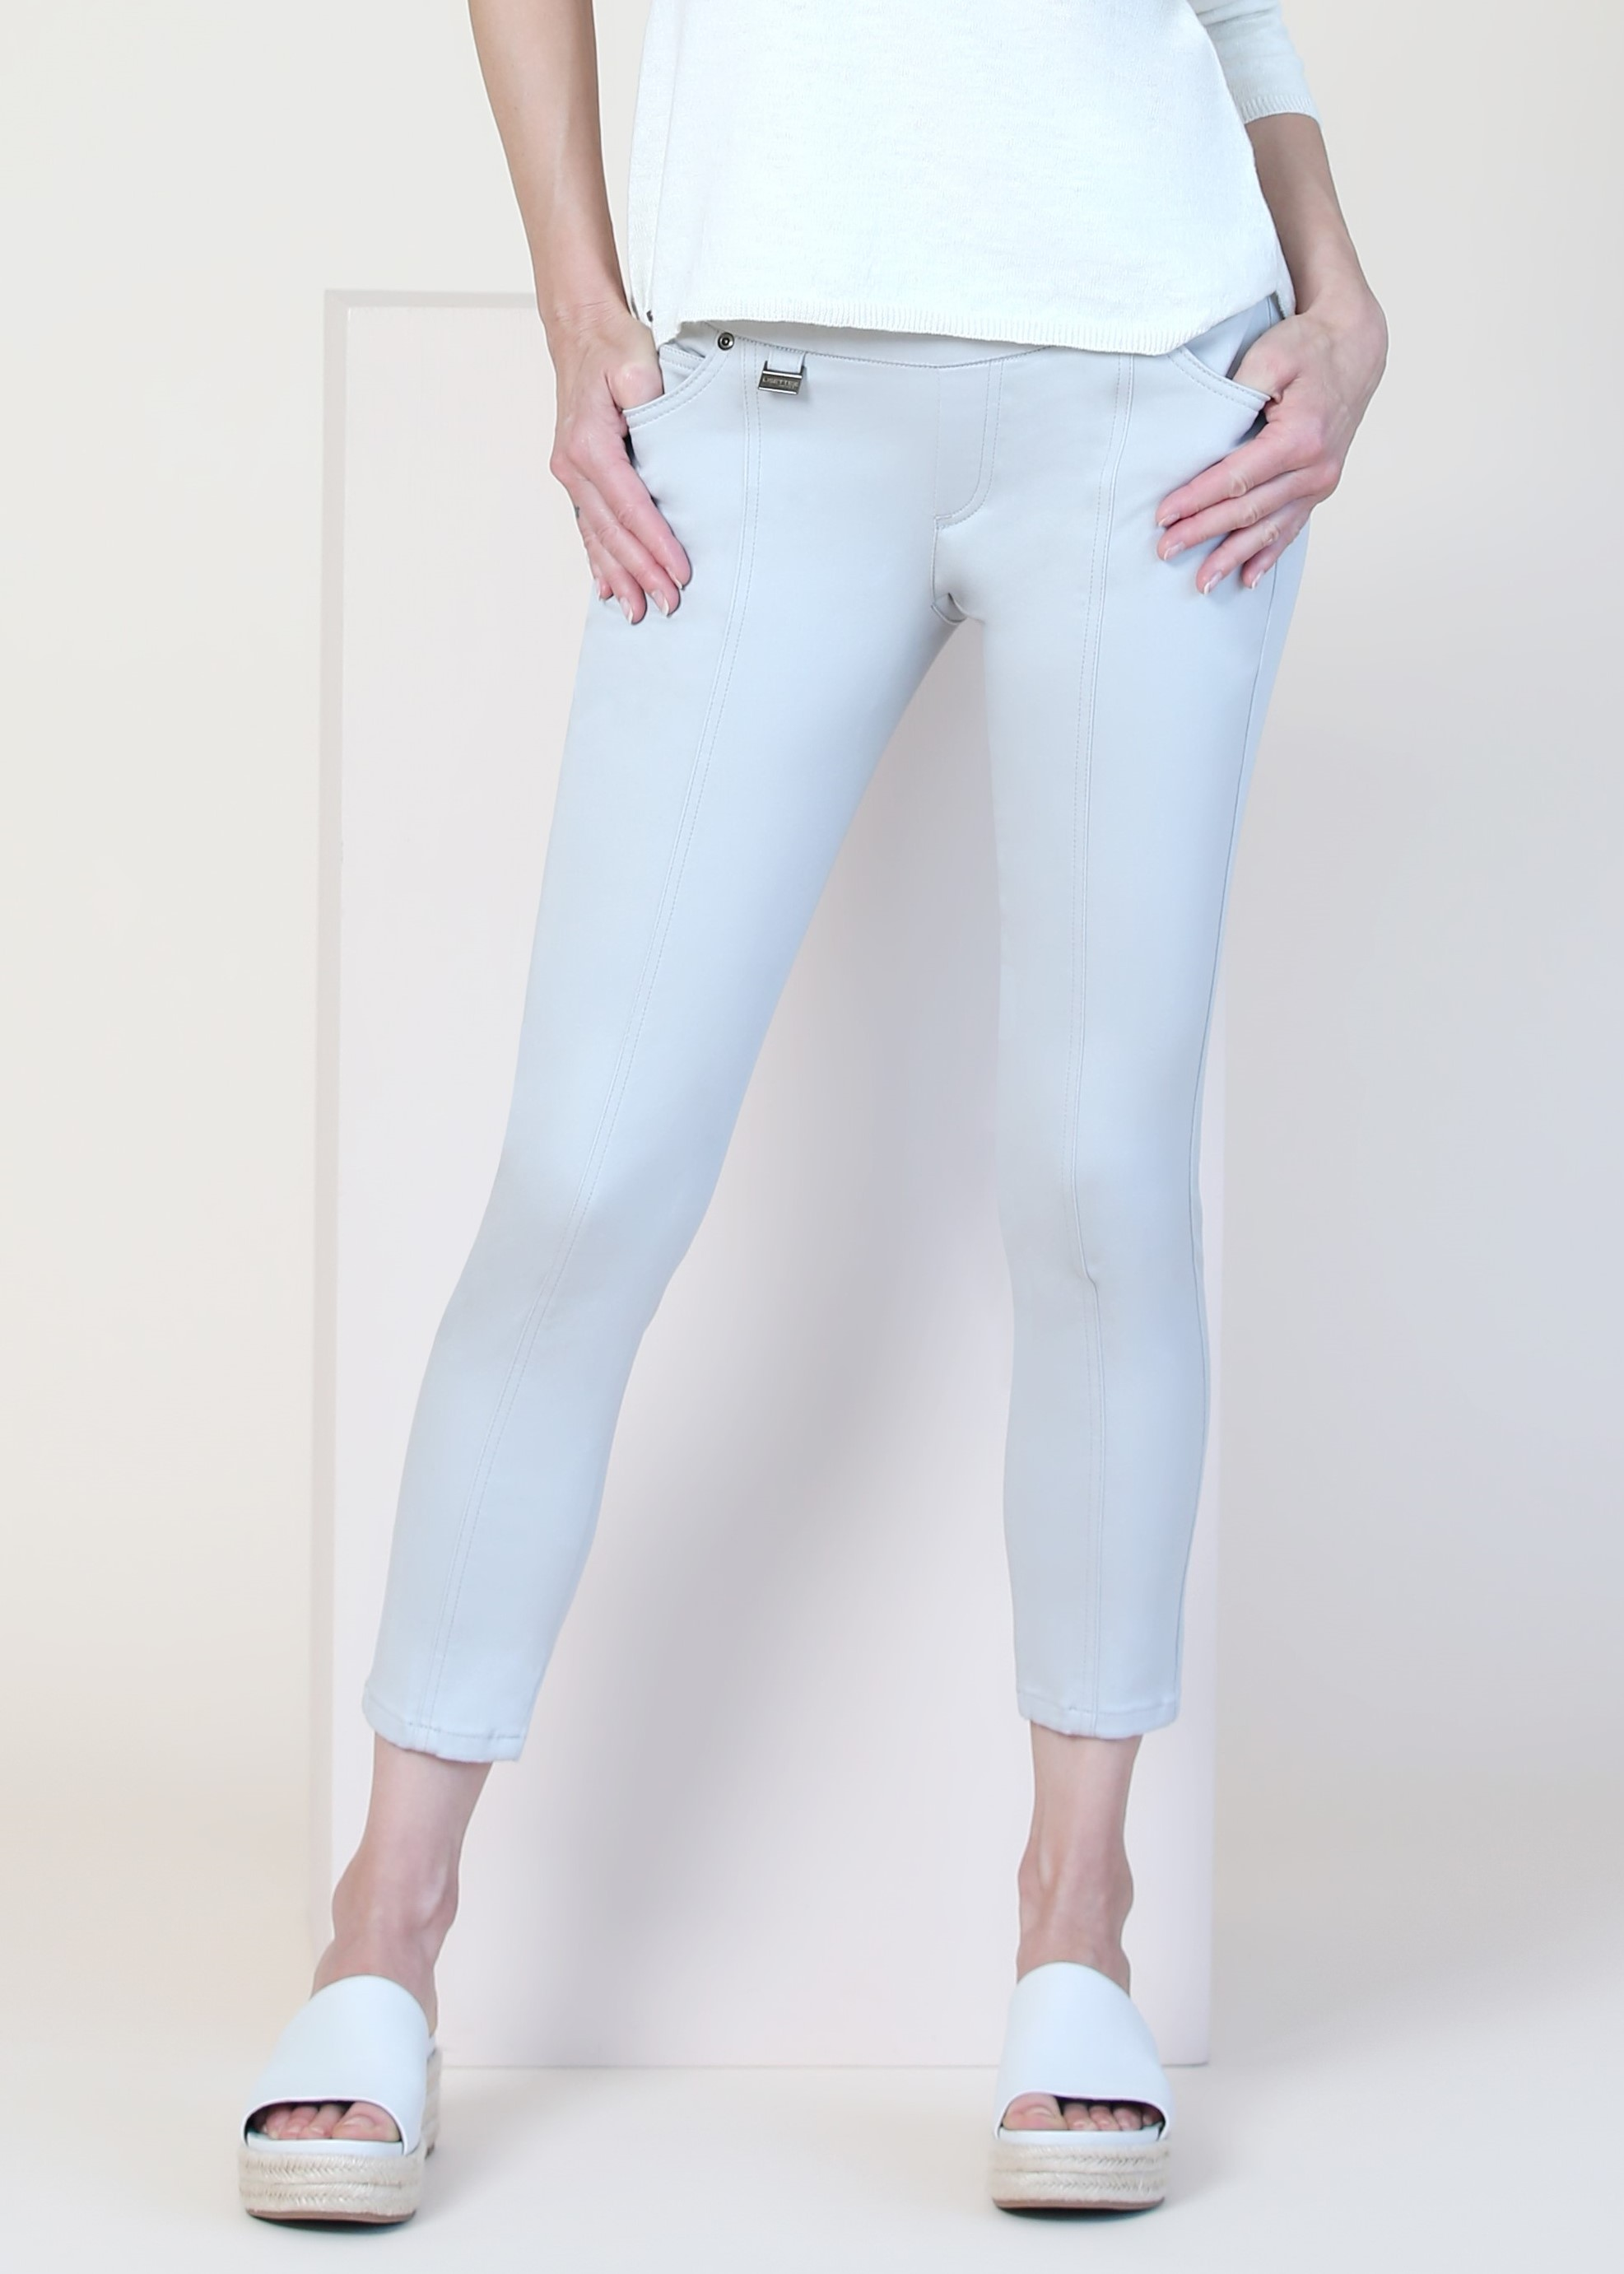 Lisette L. Slim Ankle Crop Pant Style 798964 Lena Denim Color Powder Blue